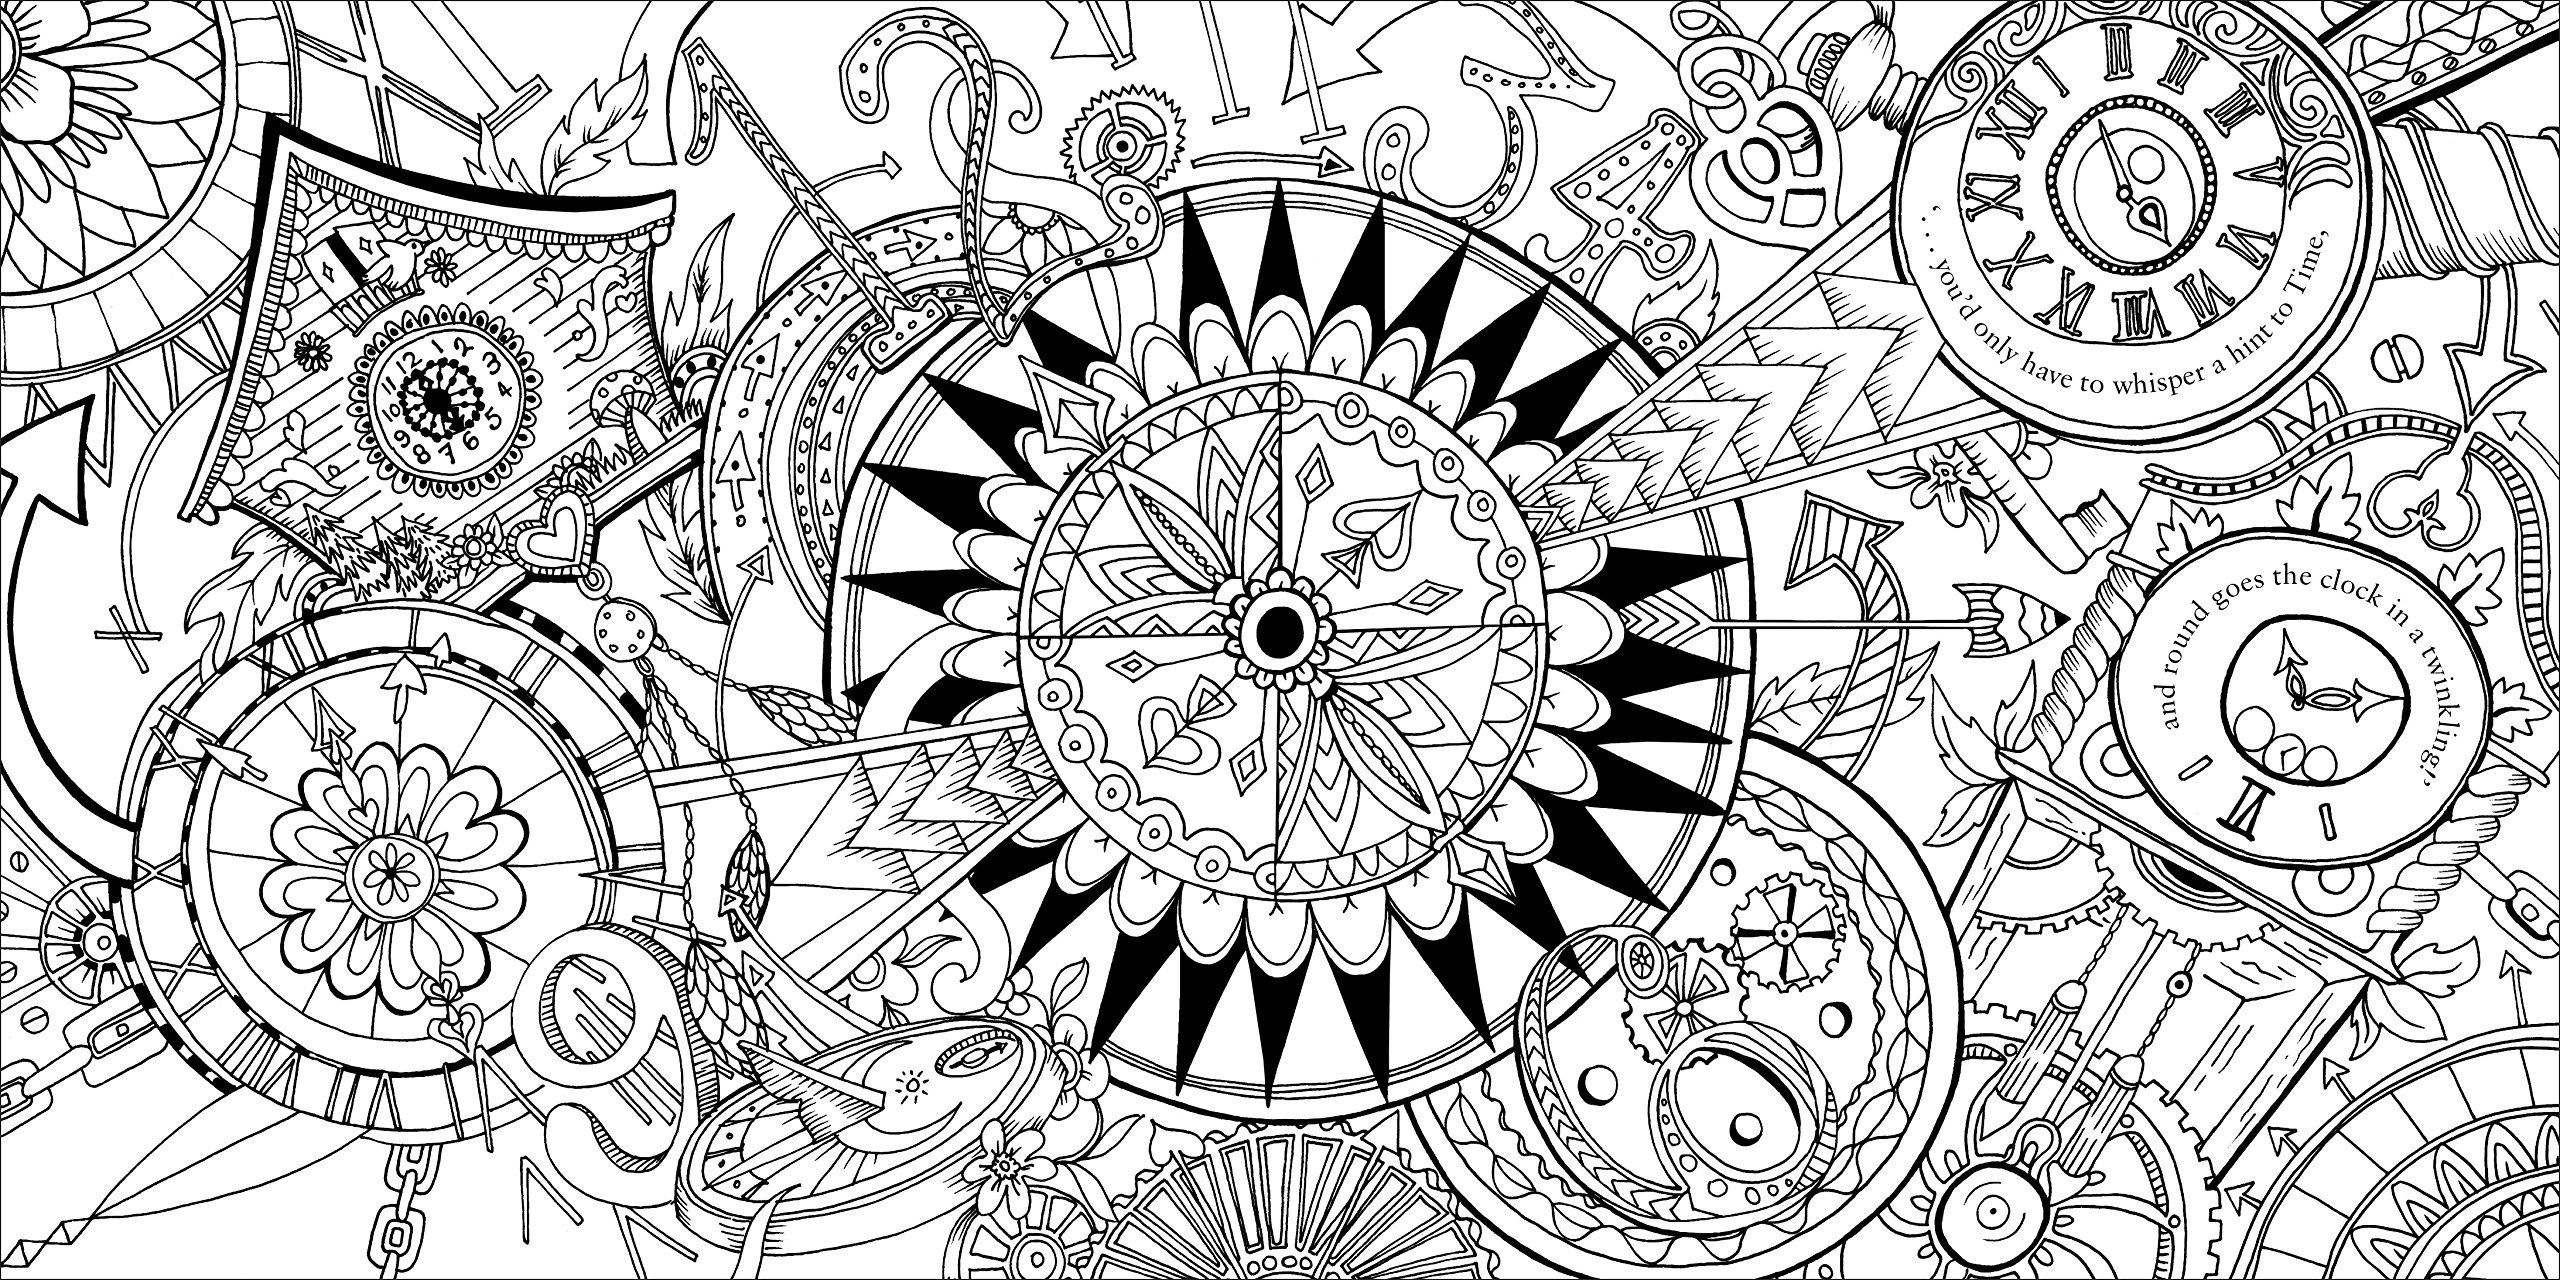 Escape To Wonderland A Colouring Book Adventure Good Wives And